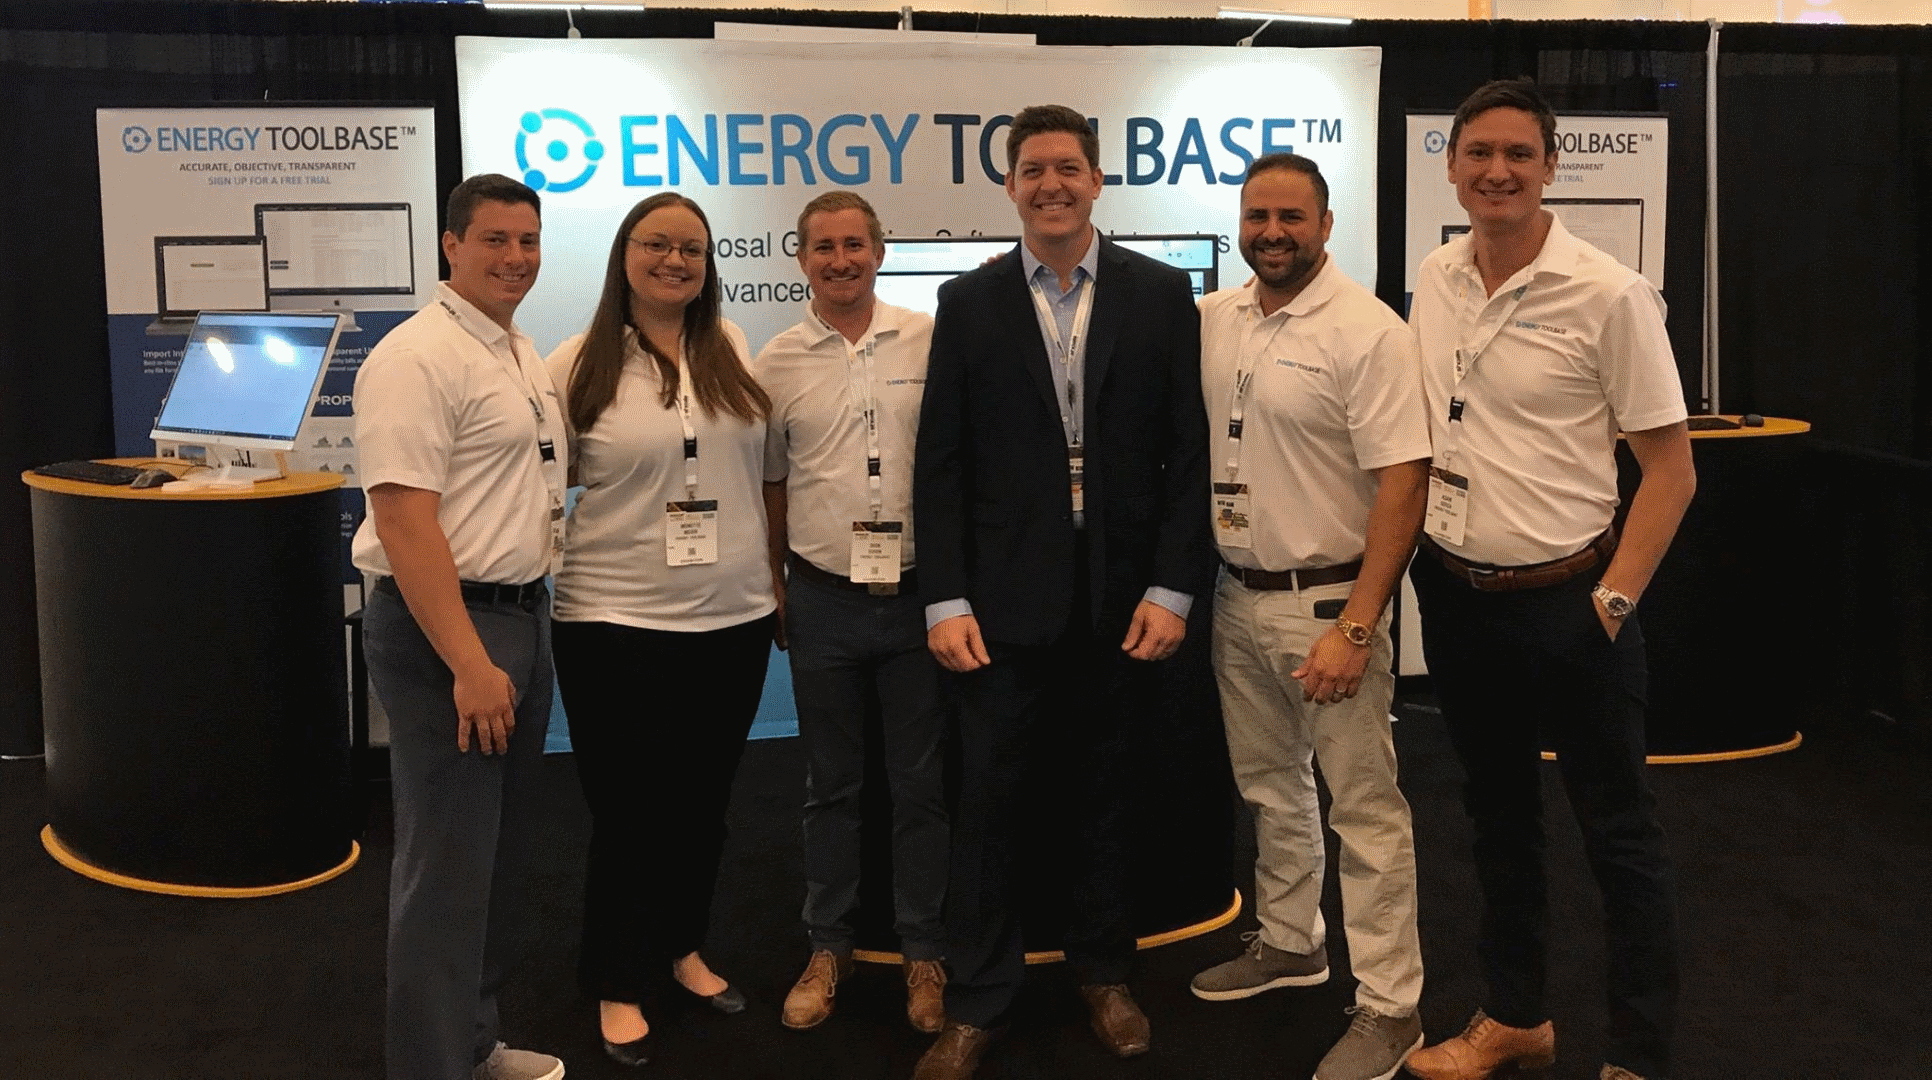 Energy Toolbase at Solar Power International